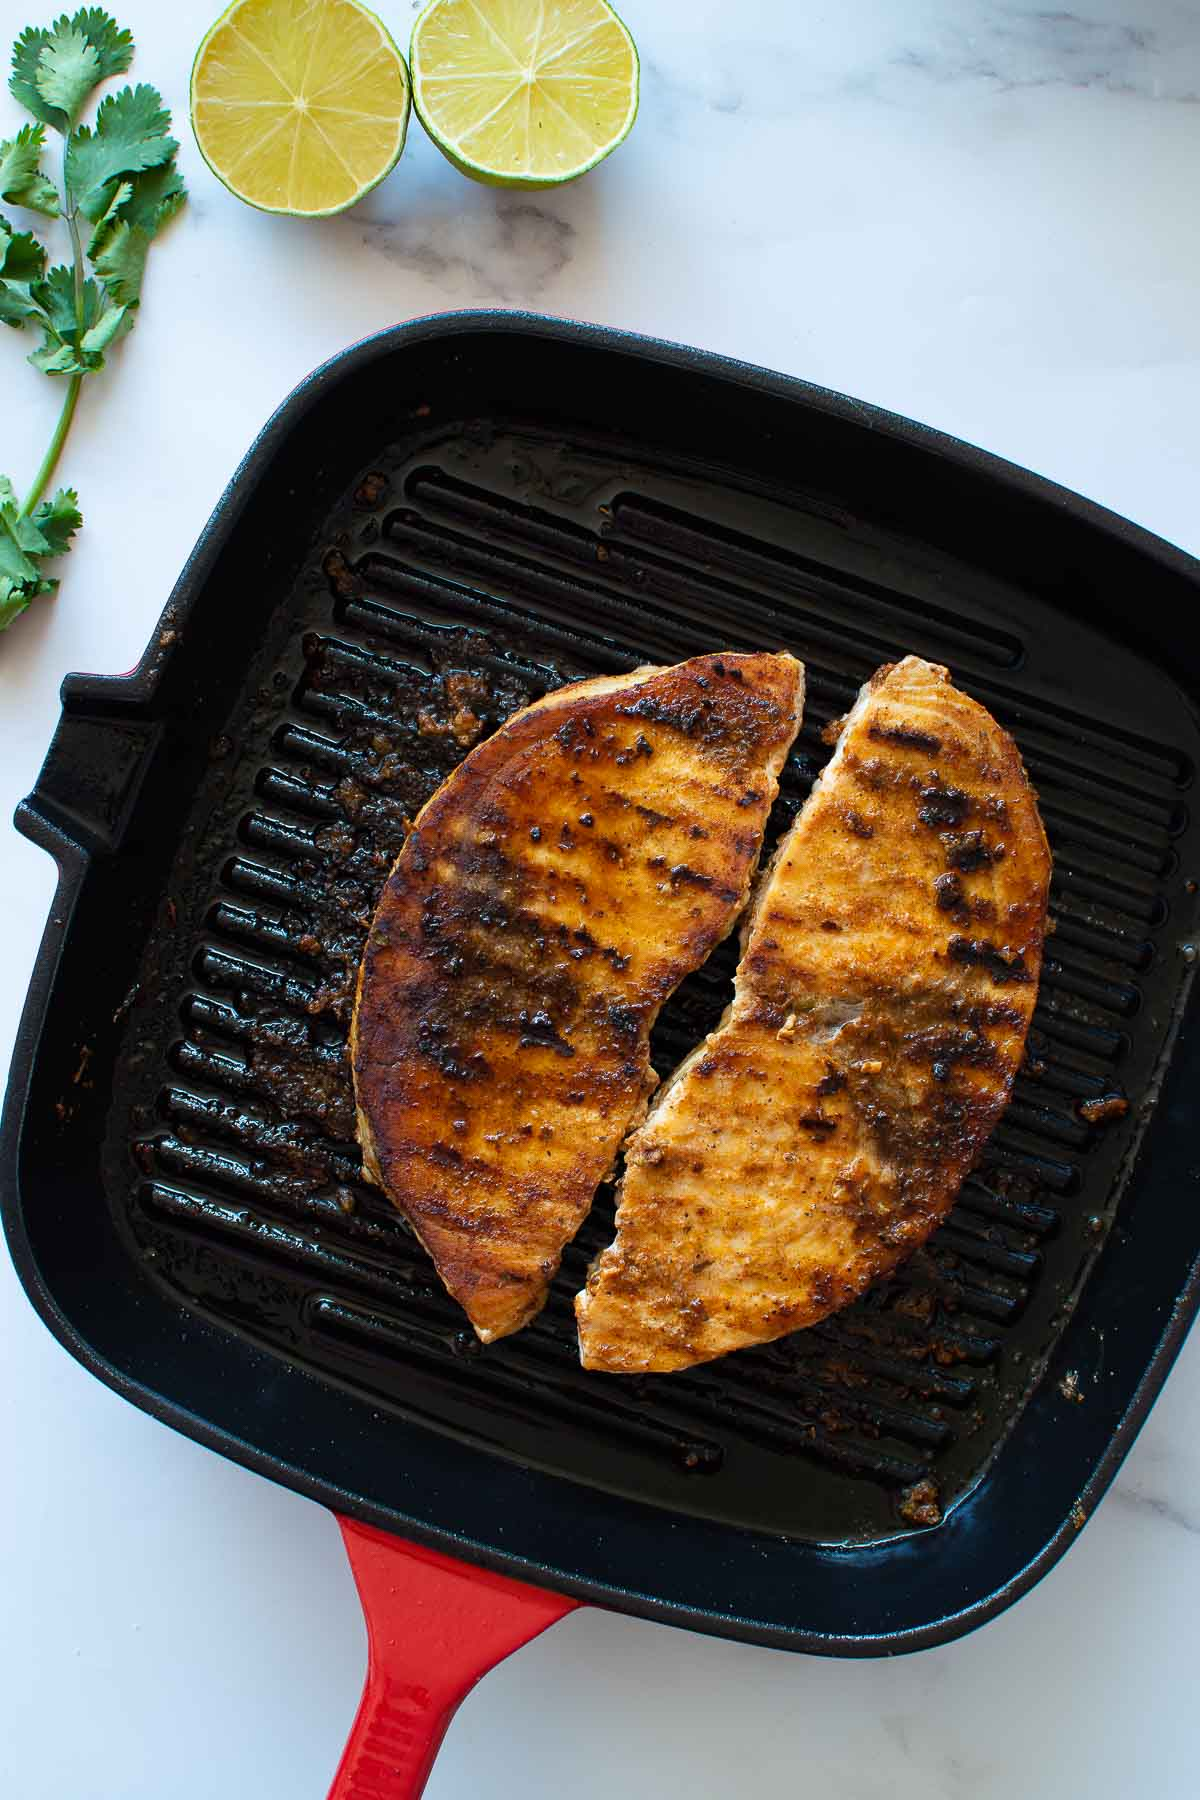 Grilled swordfish in a pan.